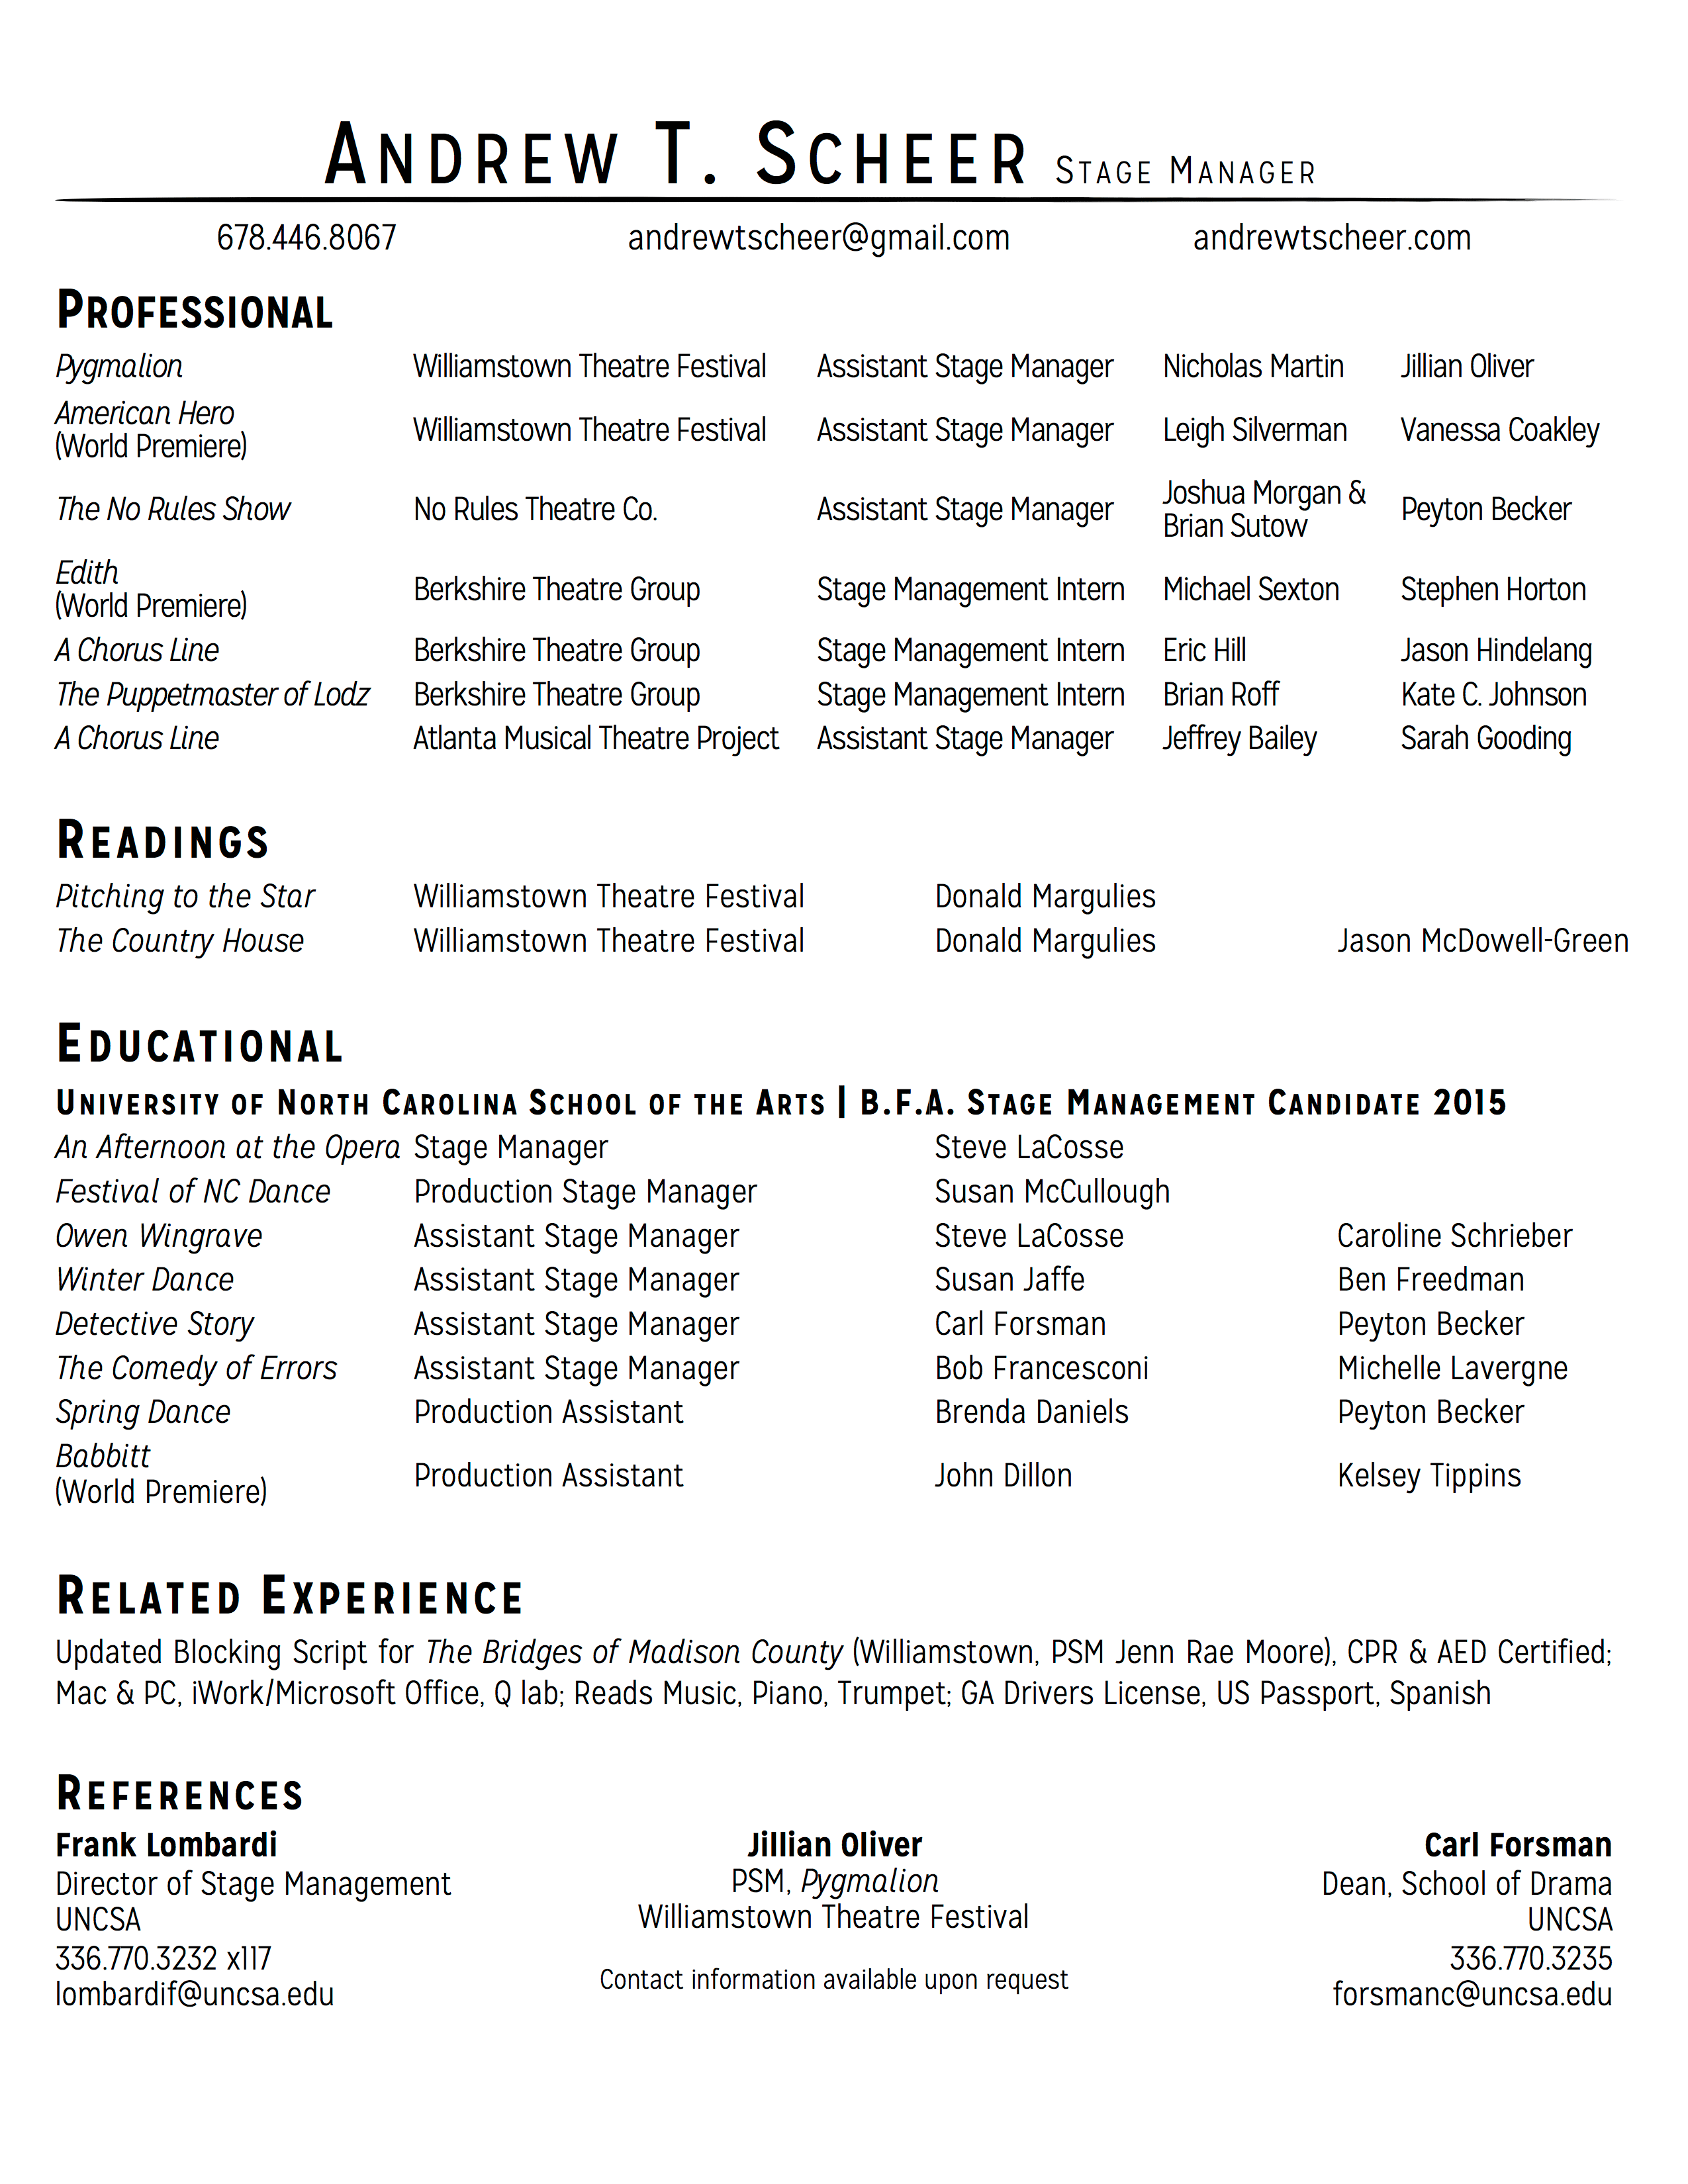 The Standard Stage Manager Resume Format